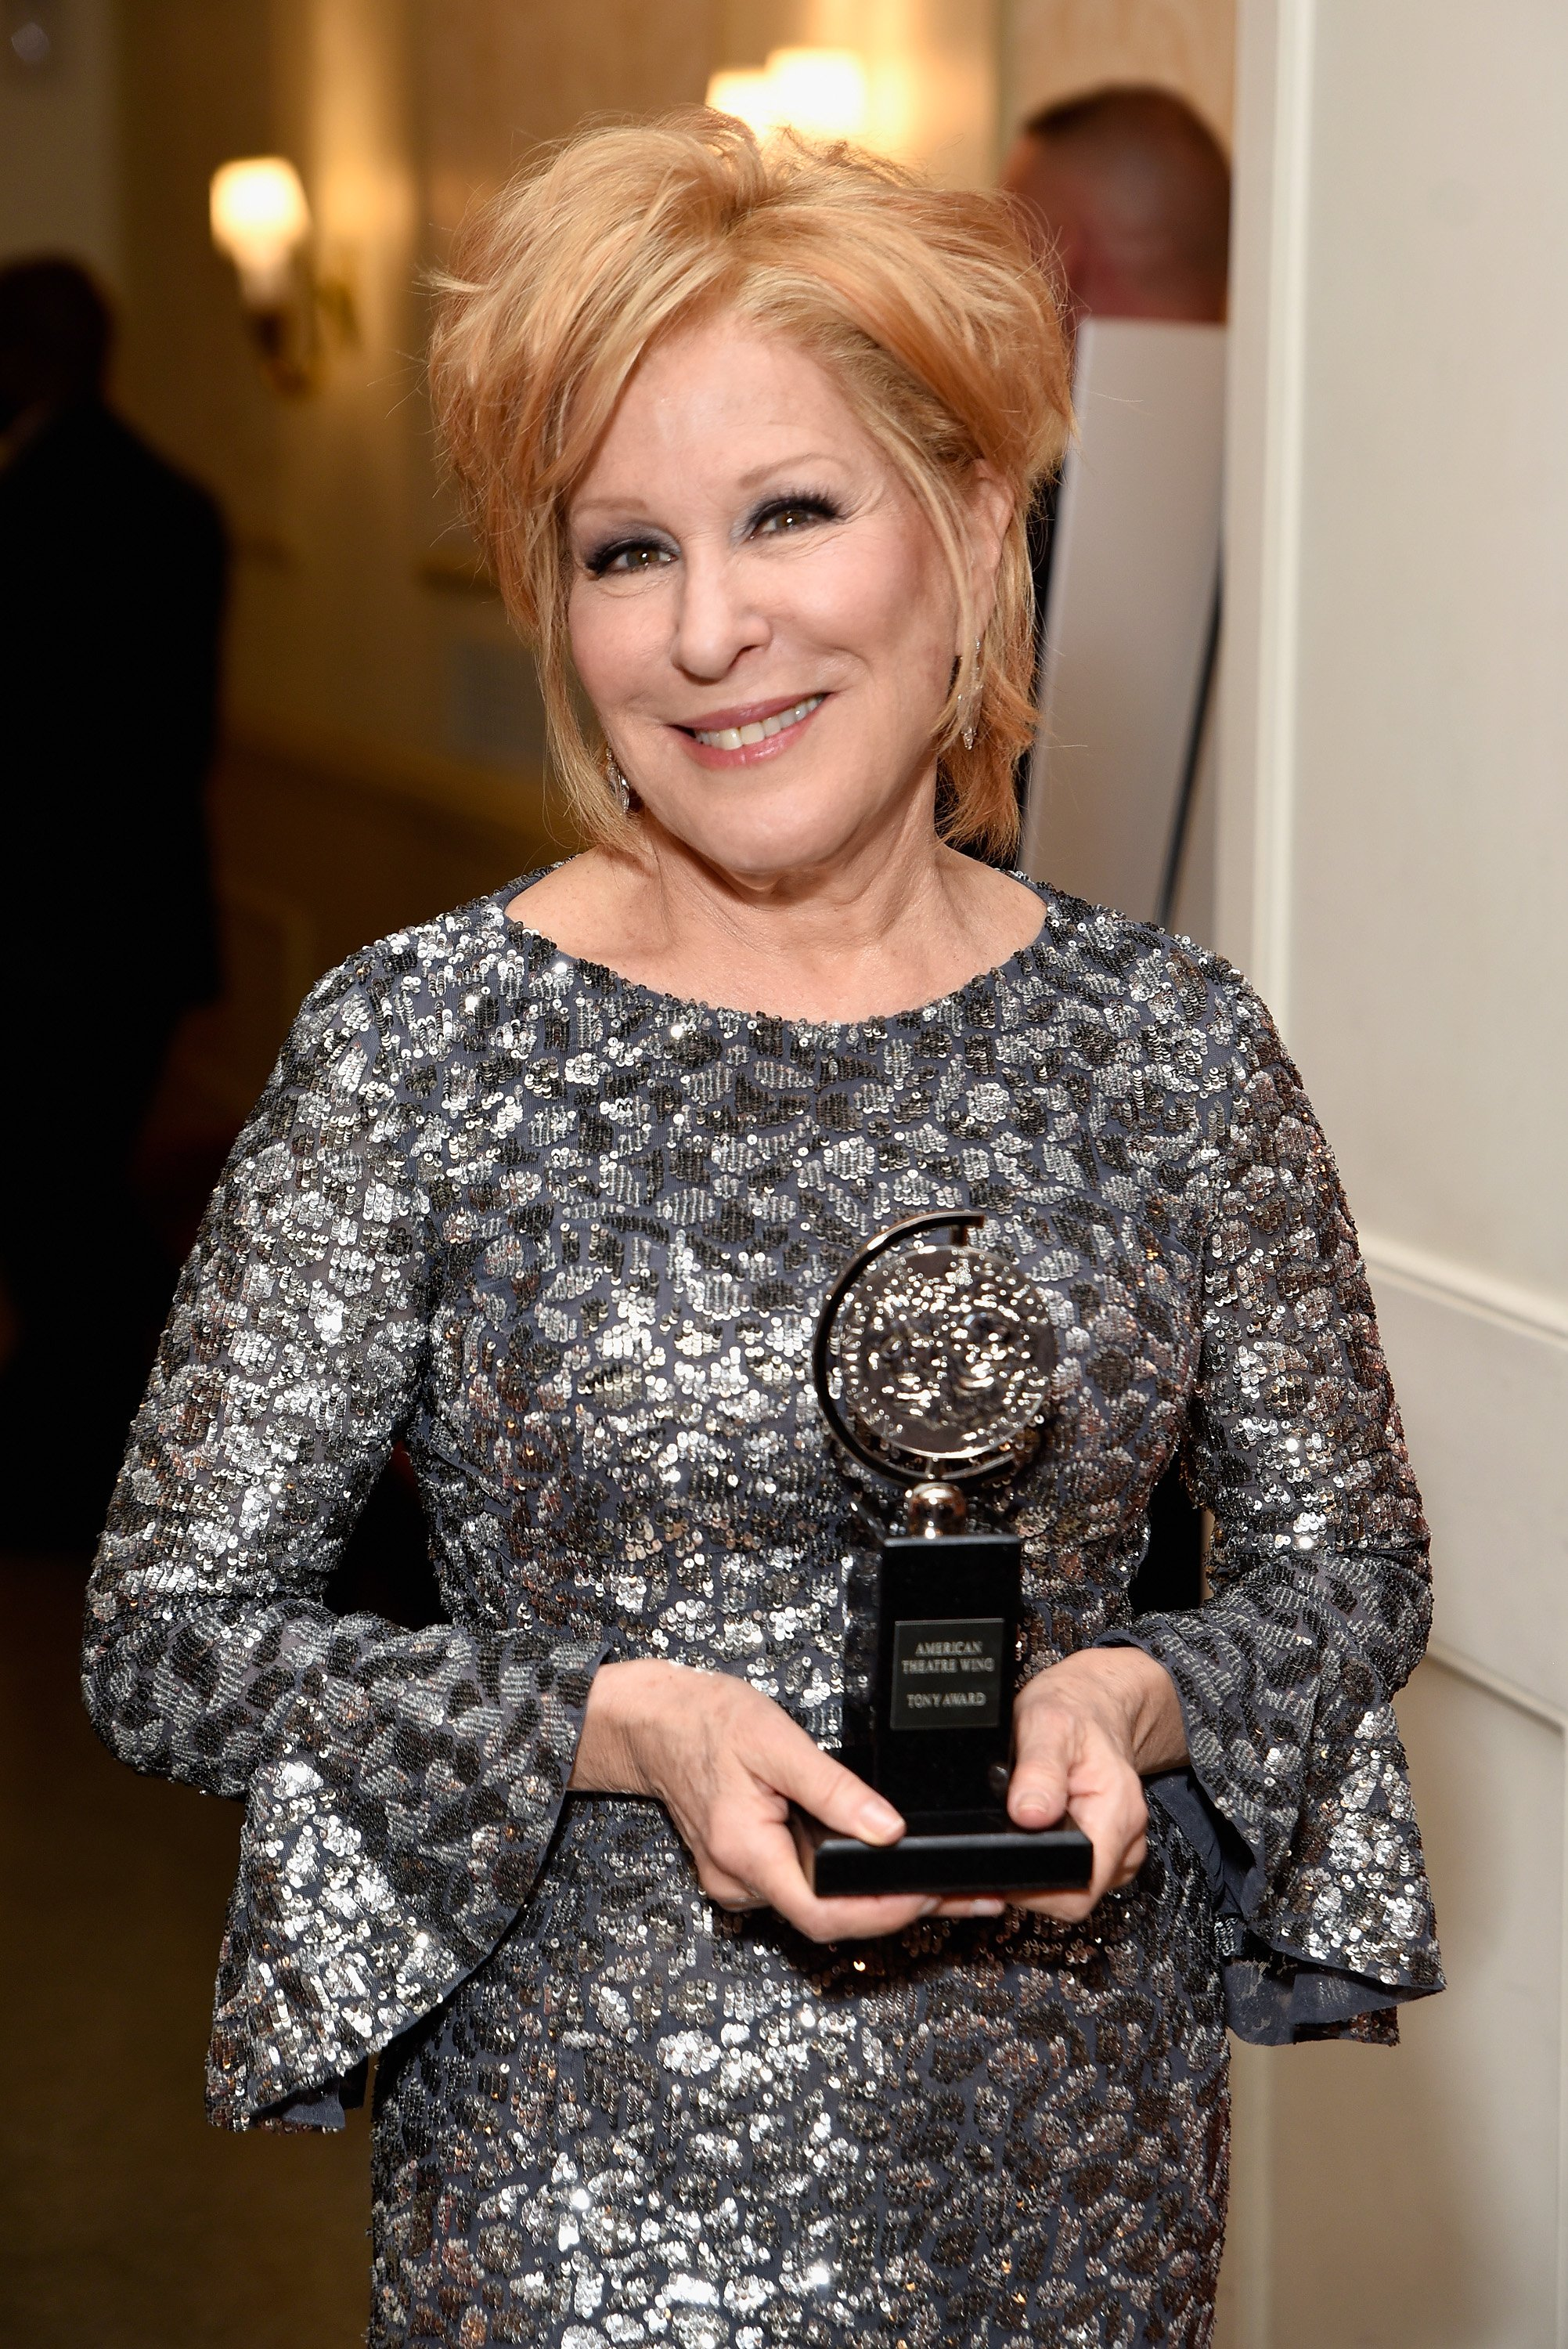 Bette Midler attends the 2017 Tony Awards on June 11, 2017.   Photo: Getty Images